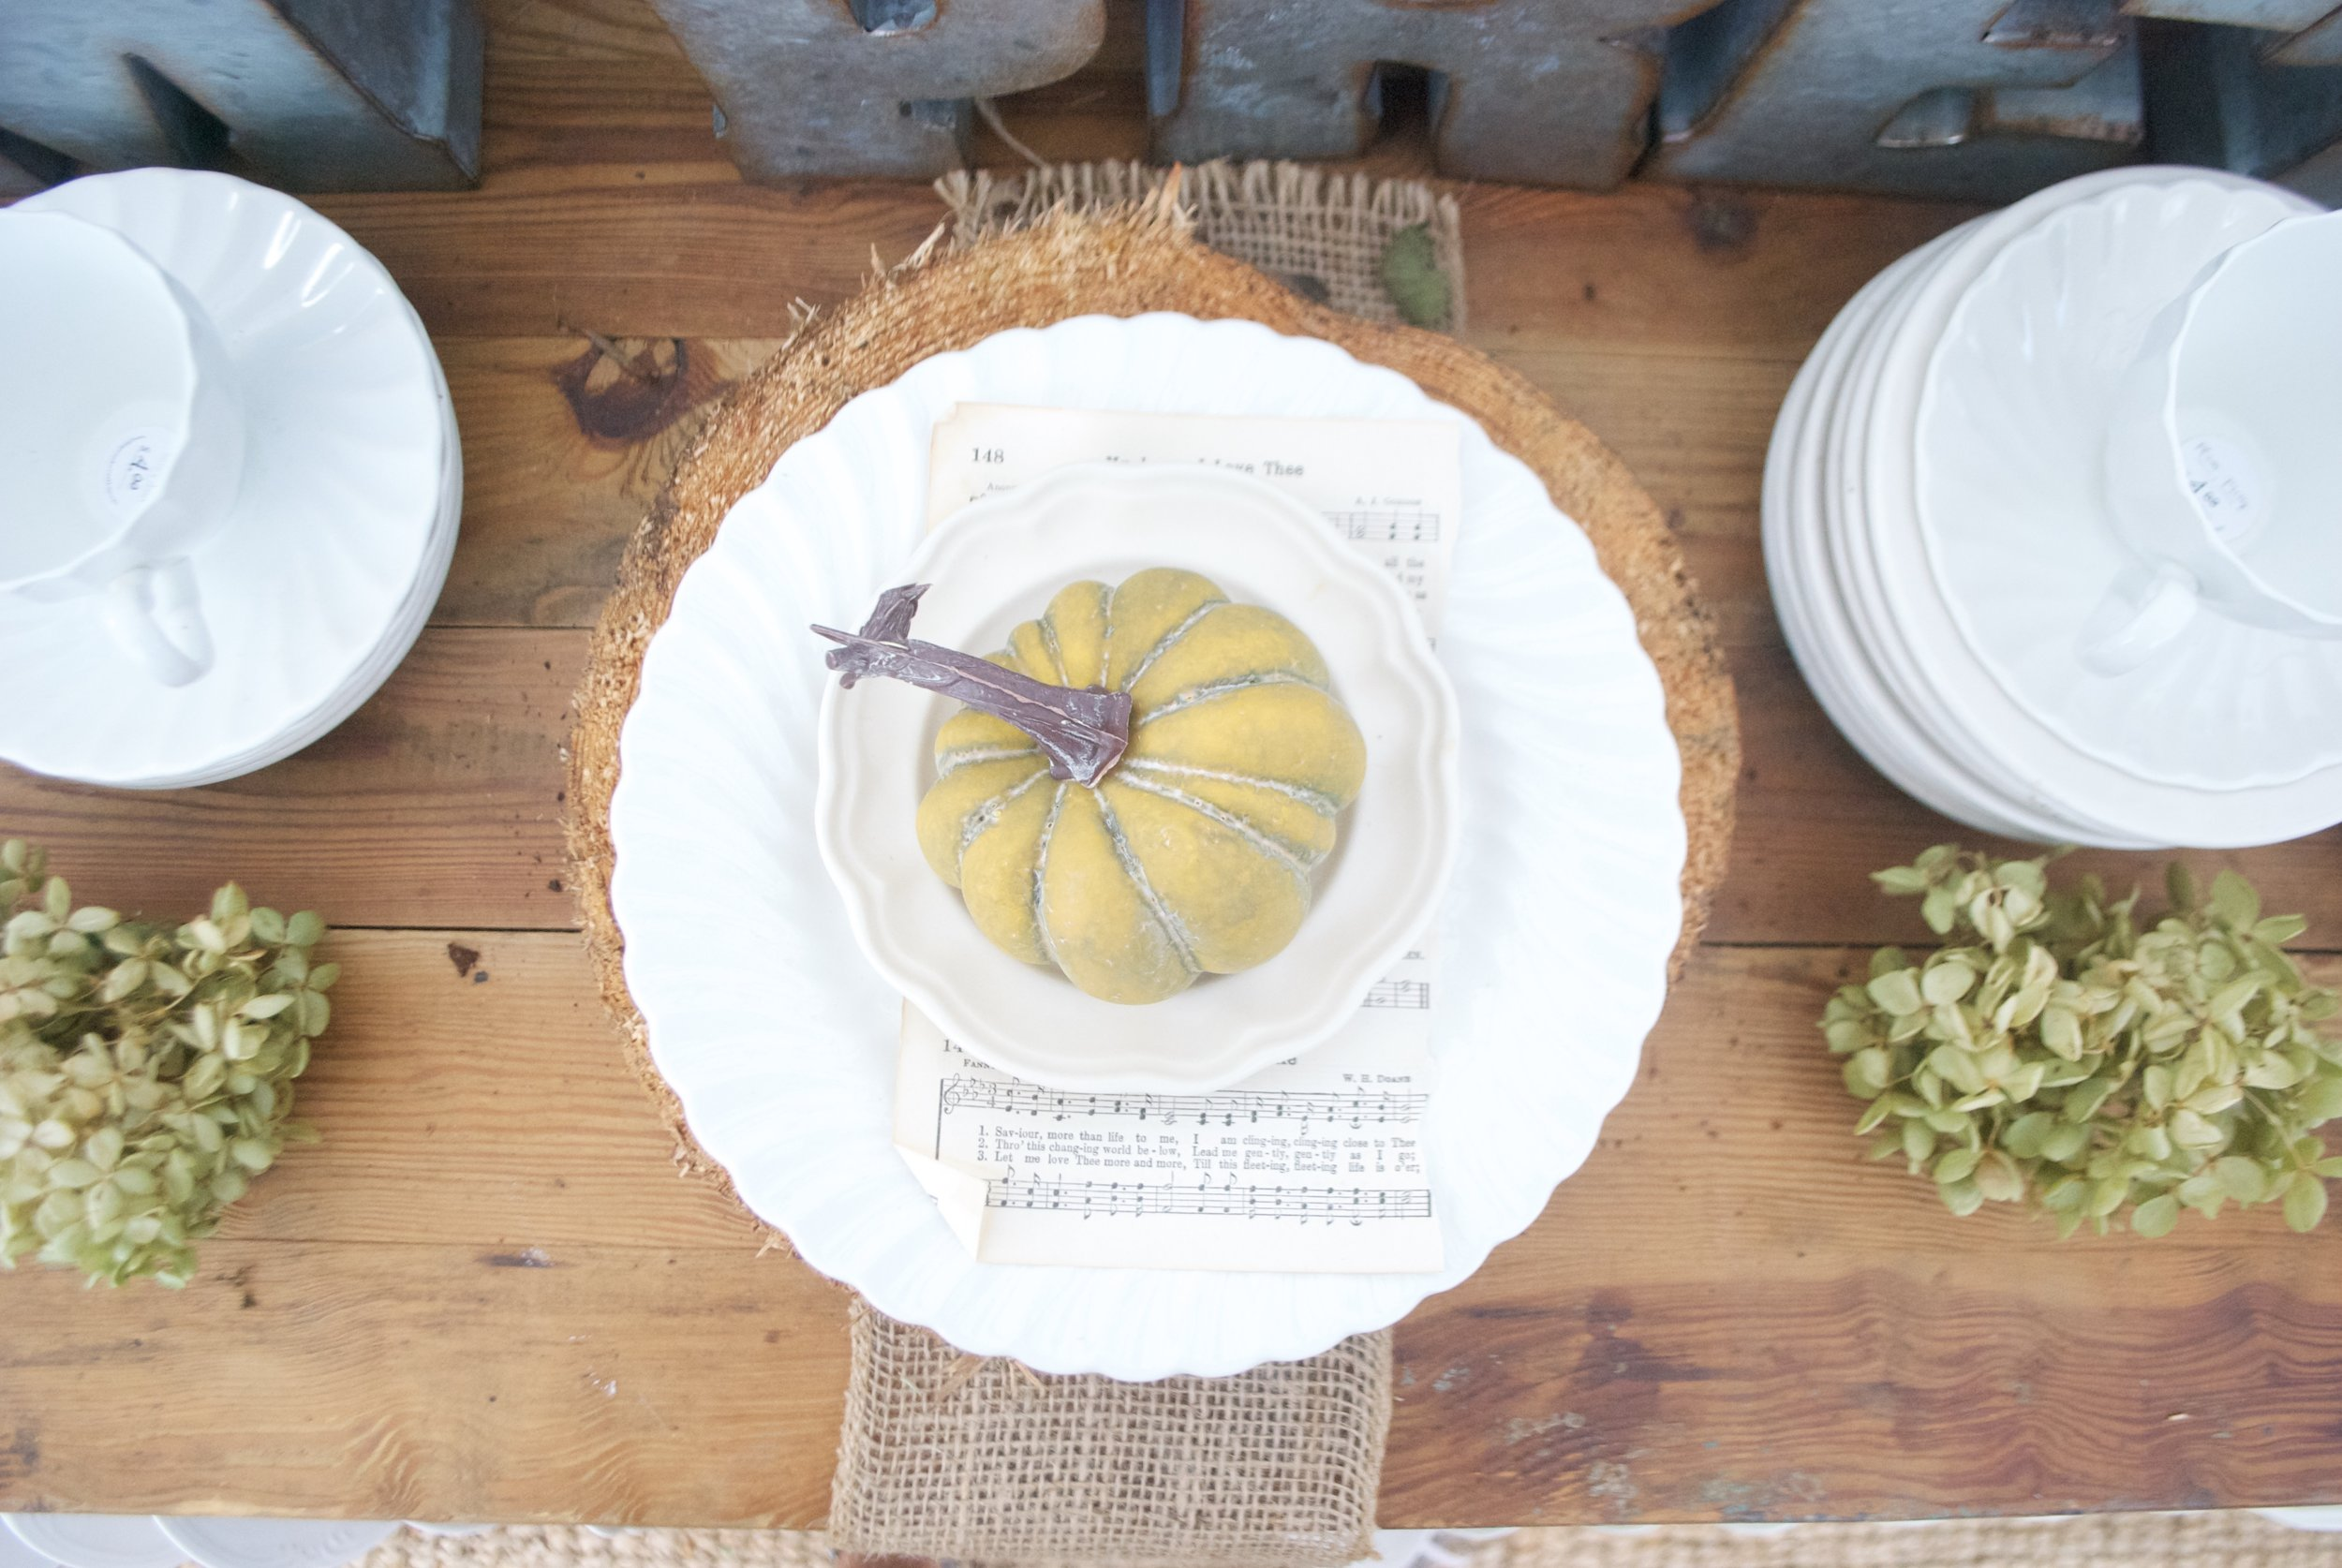 Plum Pretty Decor and Design- The Gray Door Market- Fall Table Setting with Pumpkin